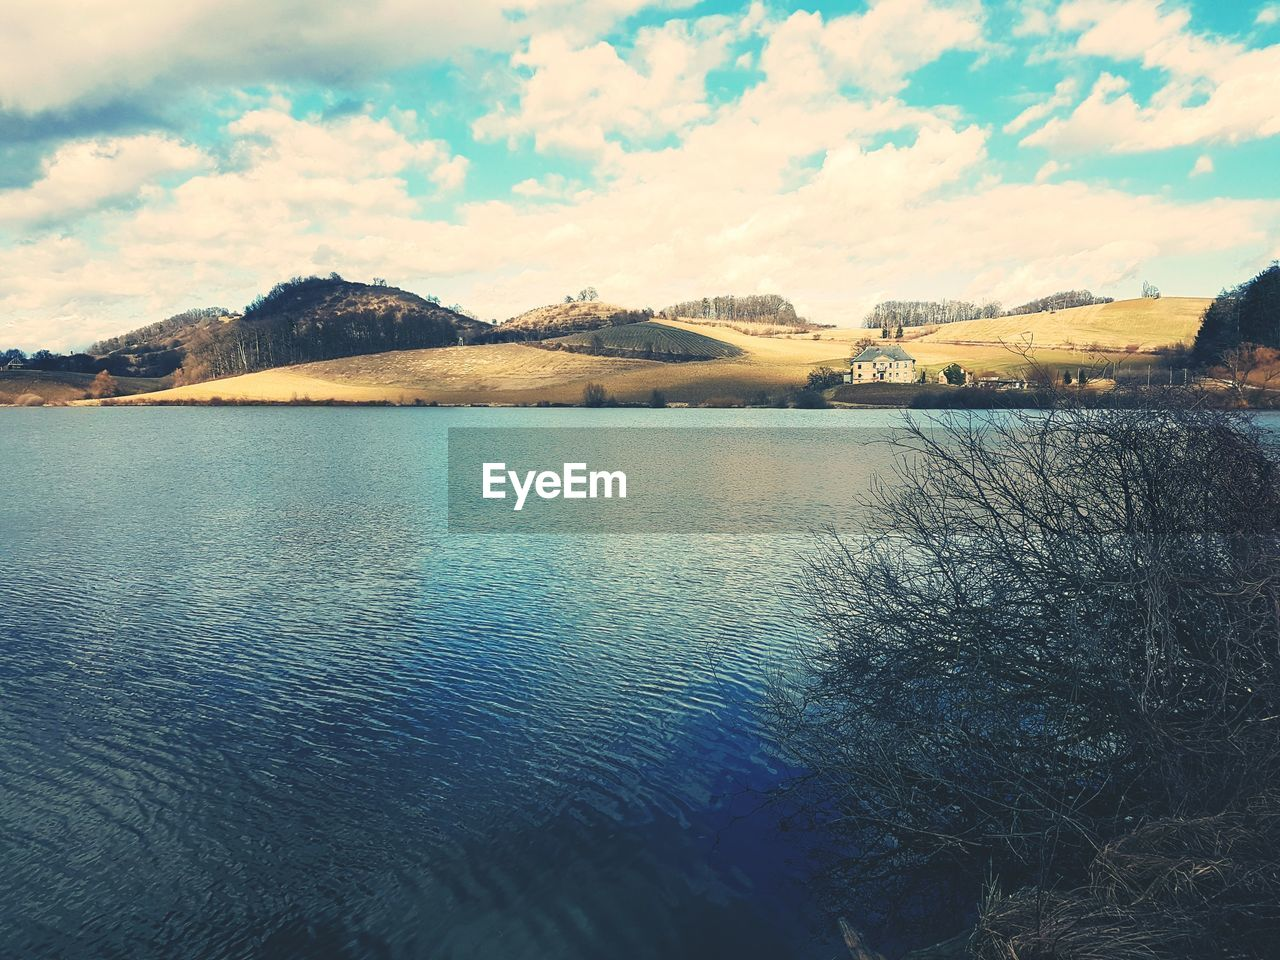 mountain, mountain range, sky, cloud - sky, beauty in nature, water, scenics, nature, no people, outdoors, tranquility, tranquil scene, day, lake, travel destinations, architecture